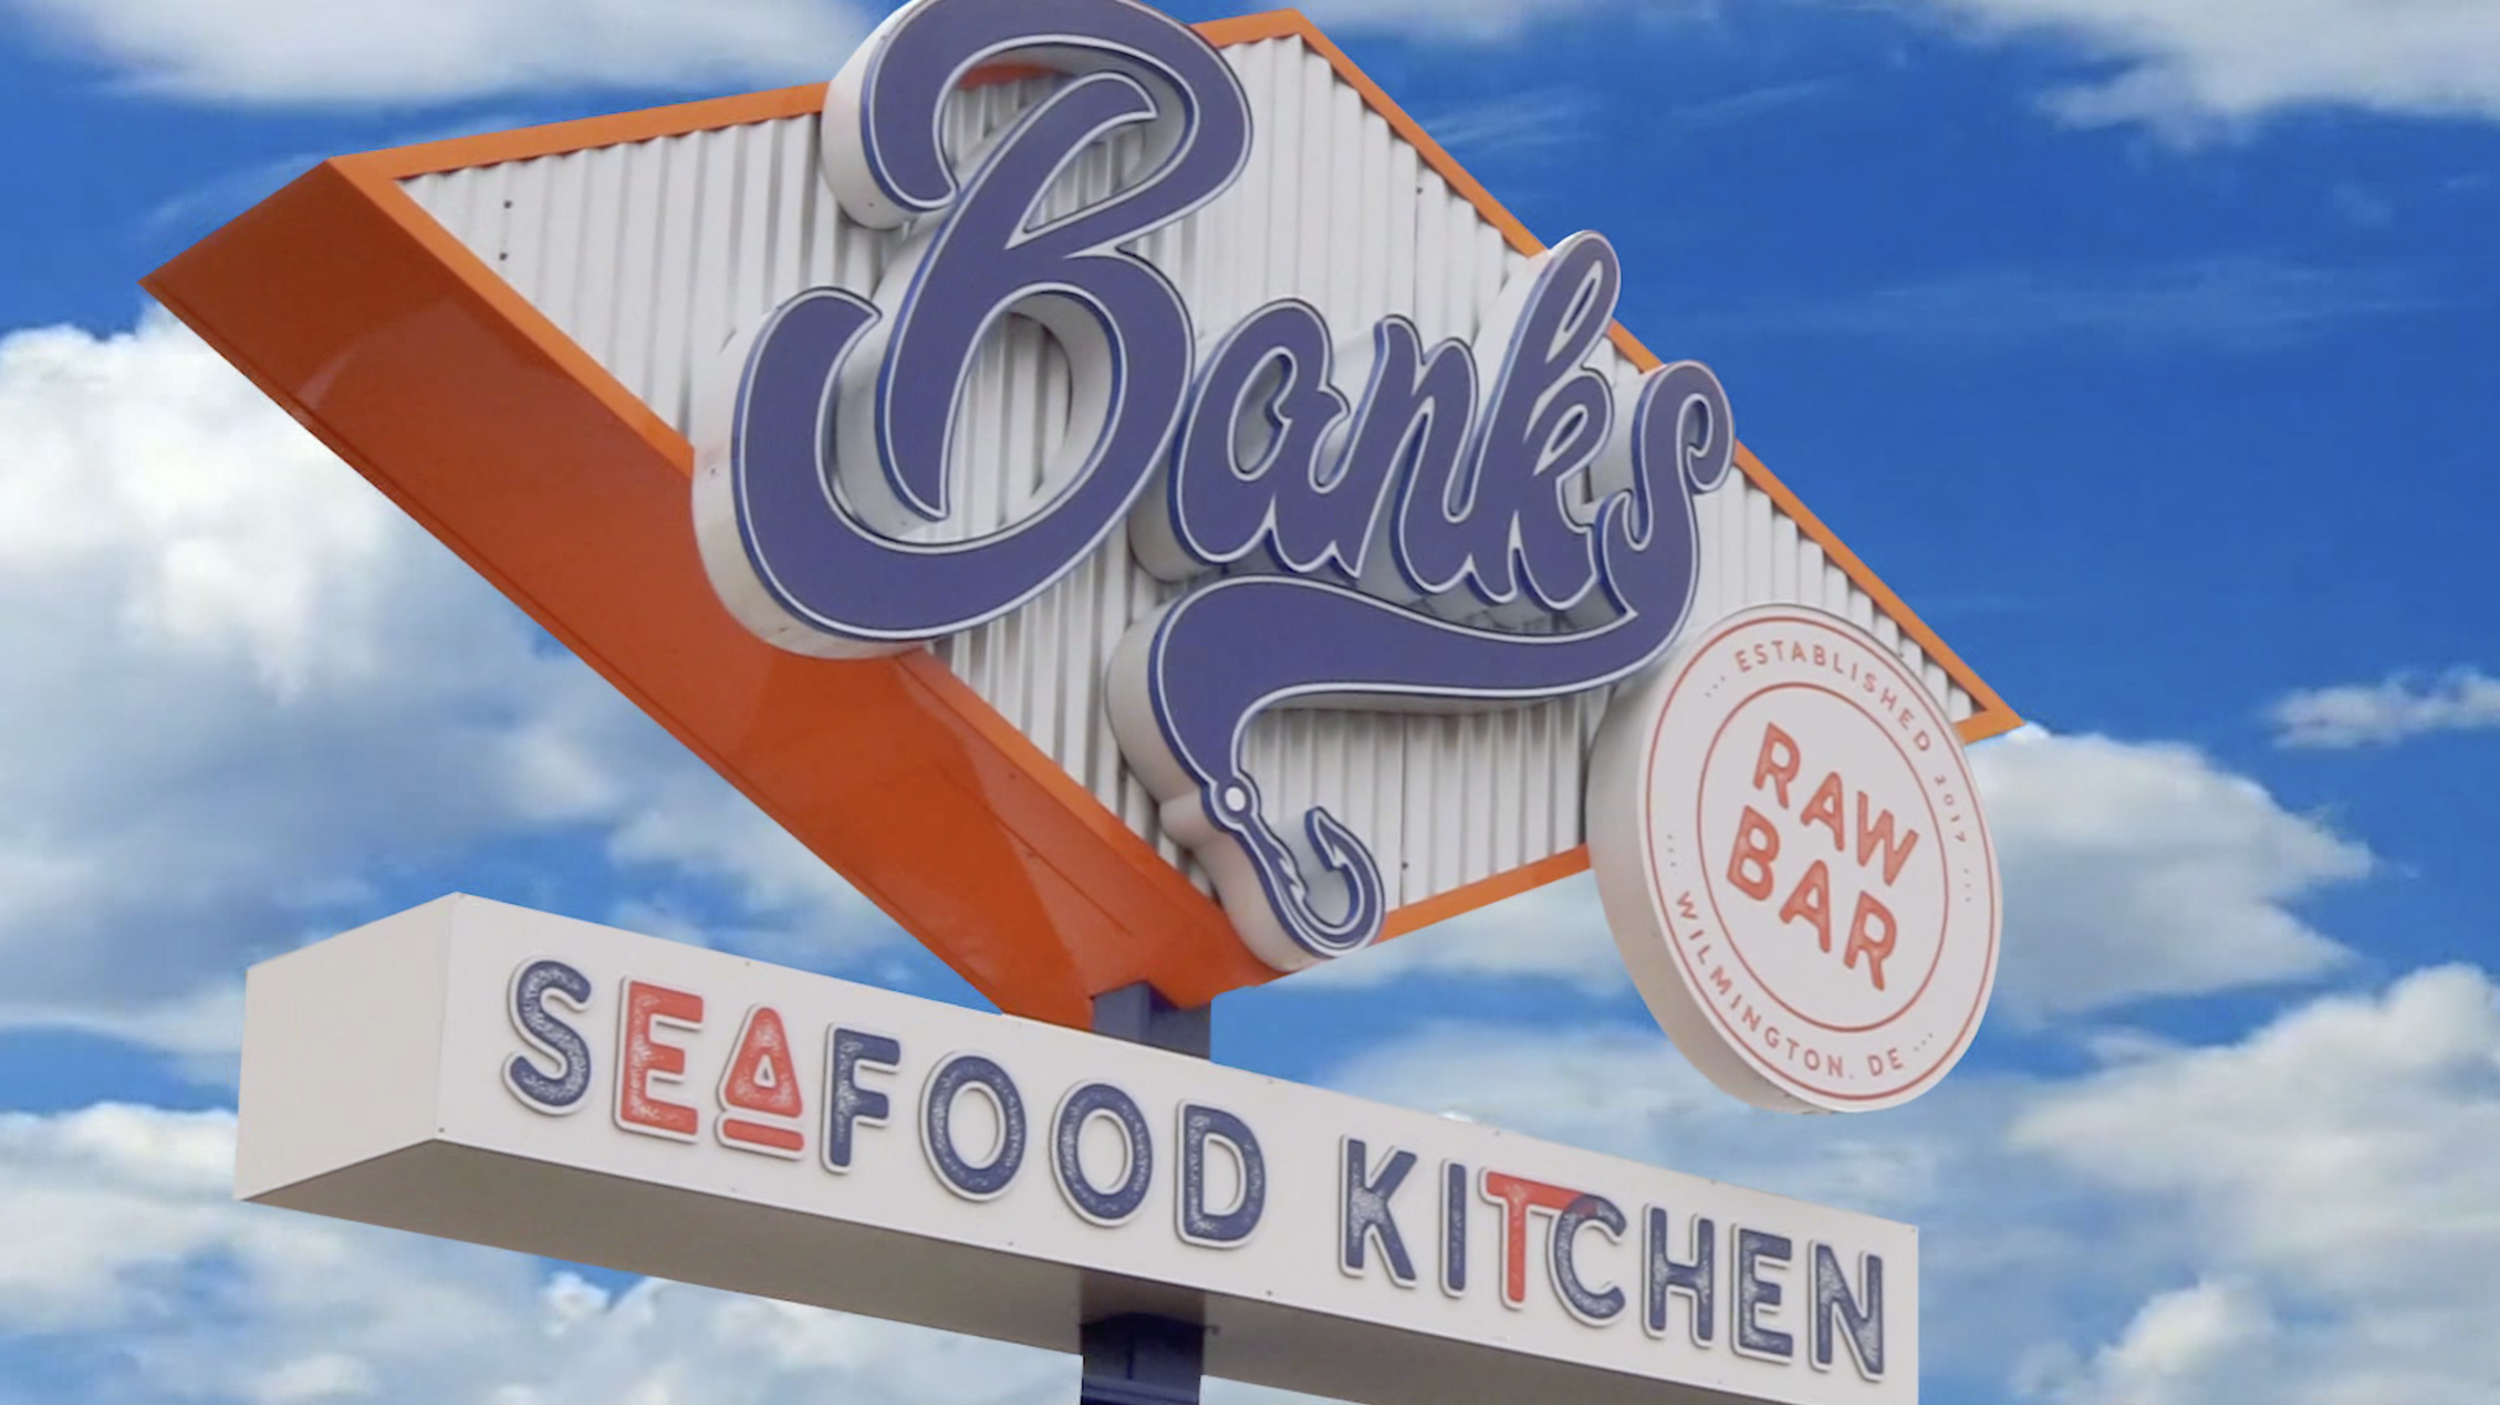 Banks Seafood Kitchen & Raw Bar